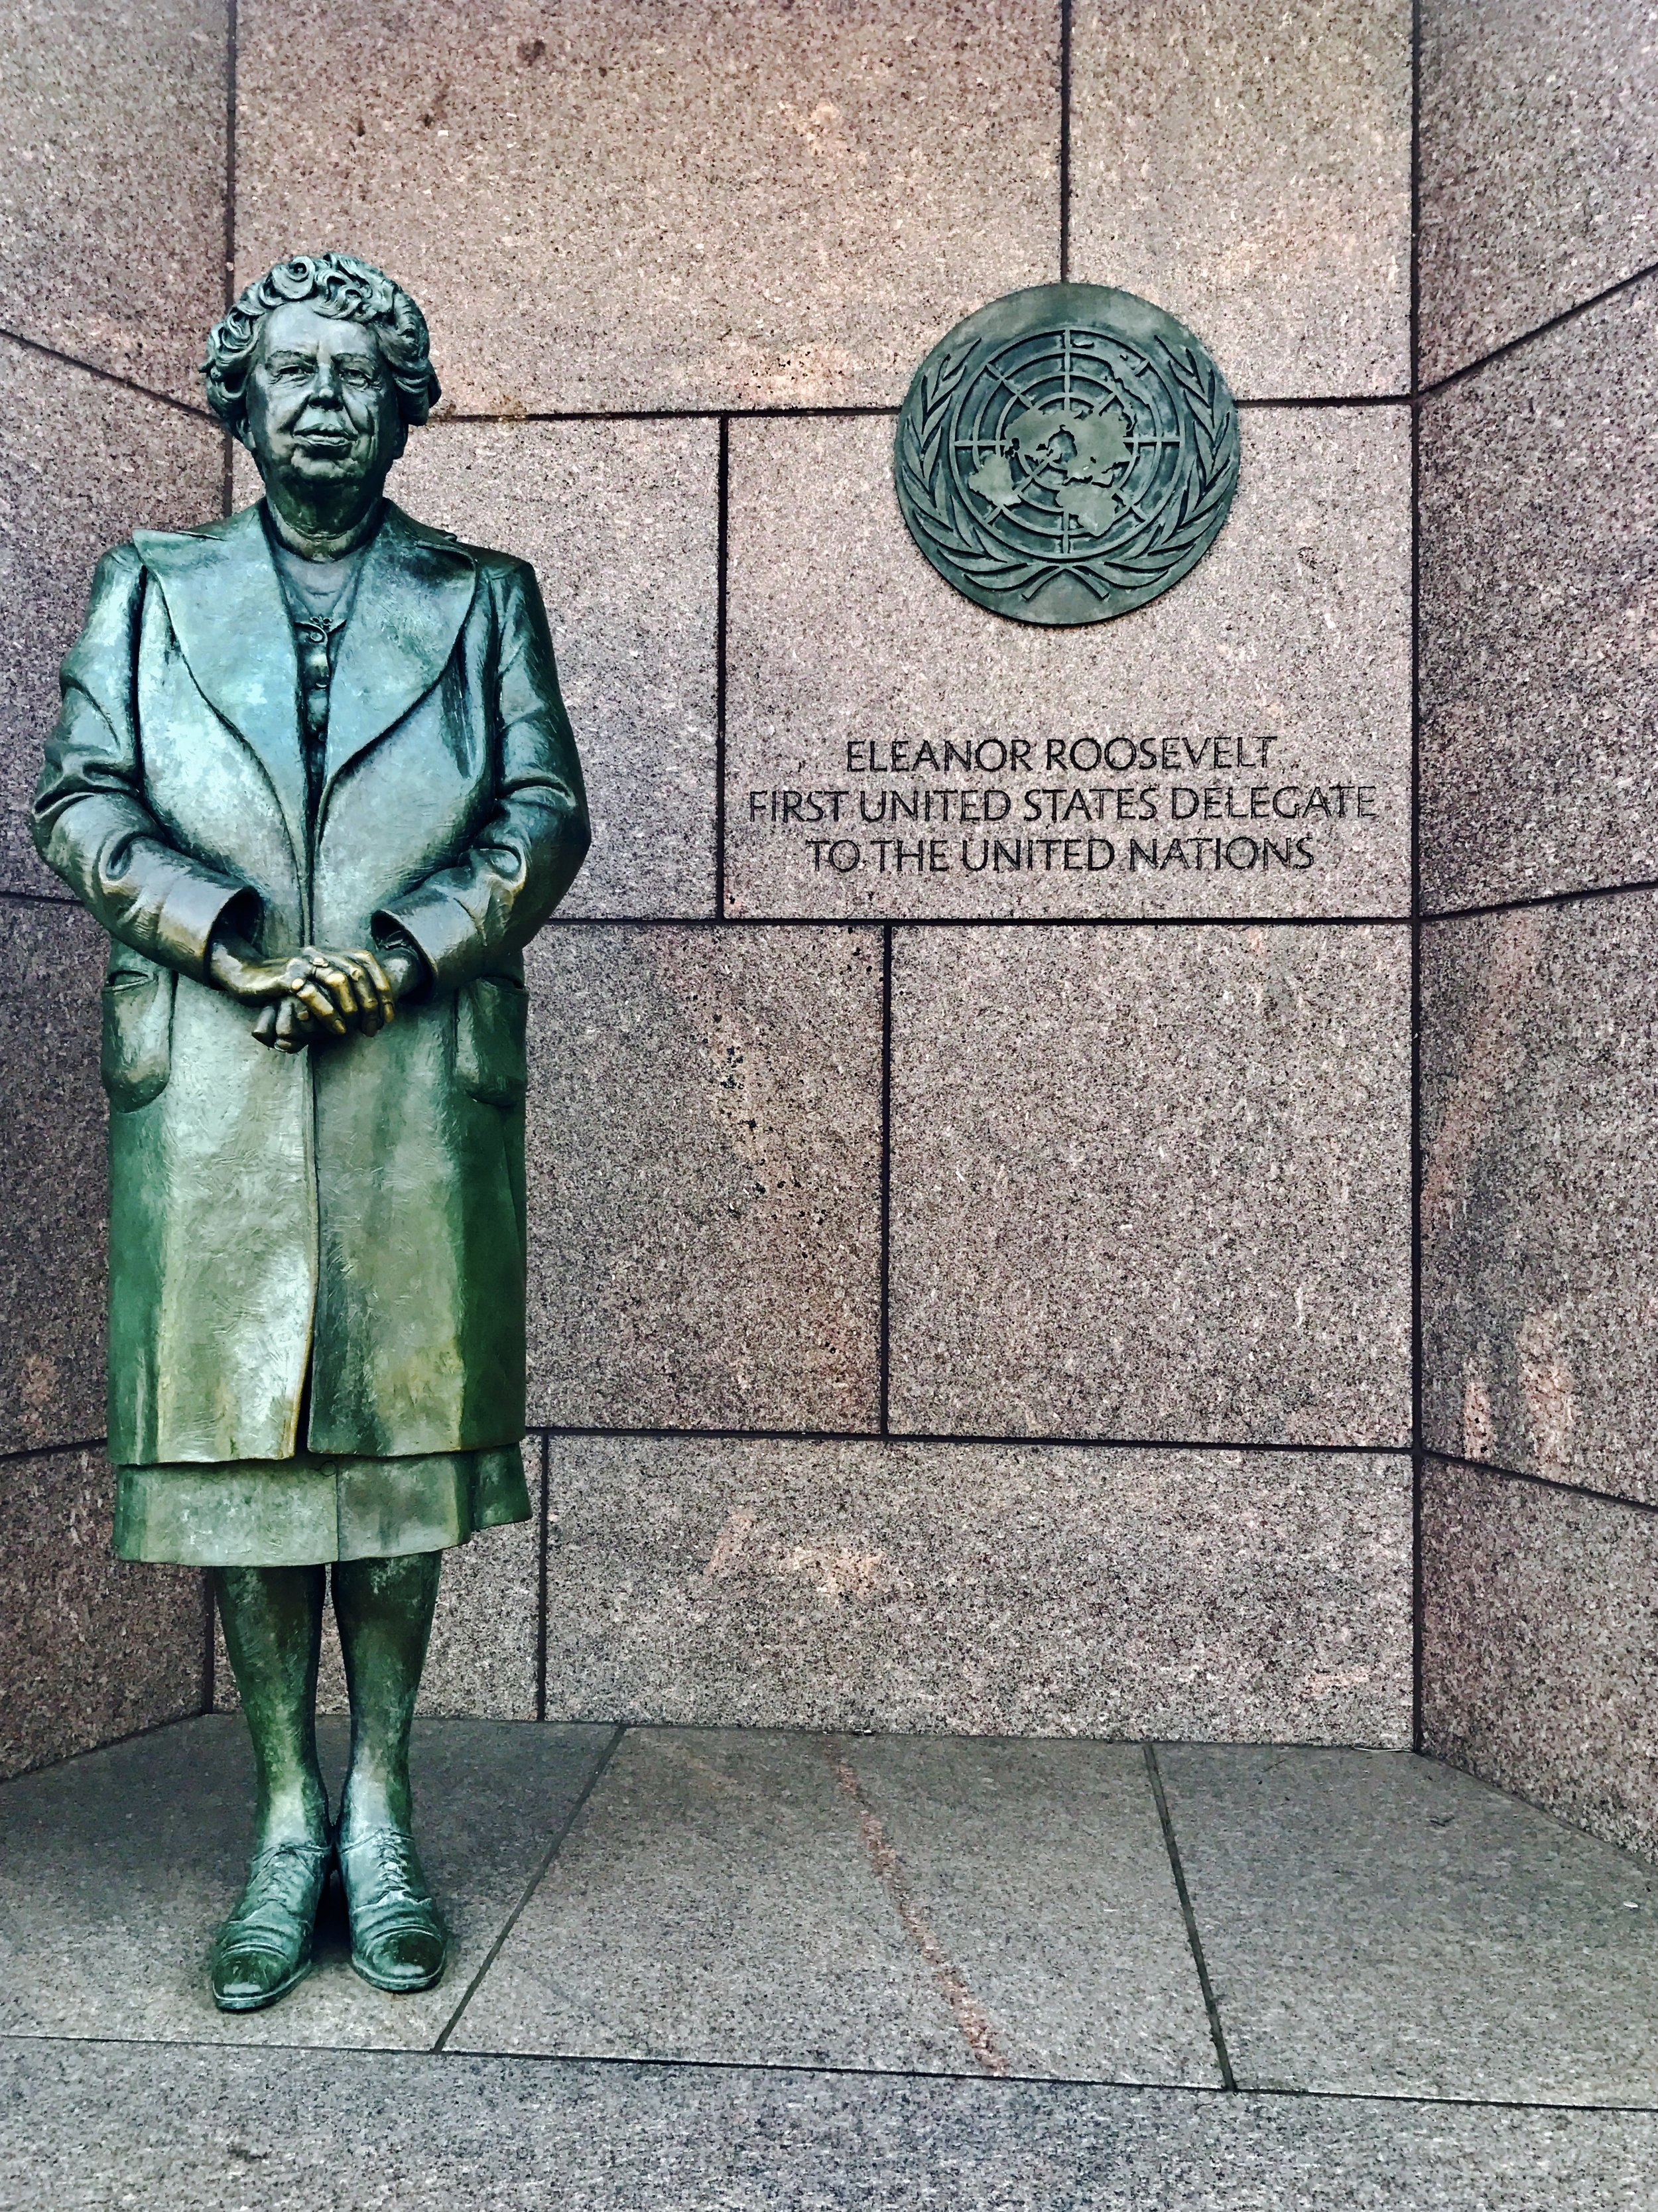 Eleanor Roosevelt's statue at the Franklin Delano Roosevelt Memorial.